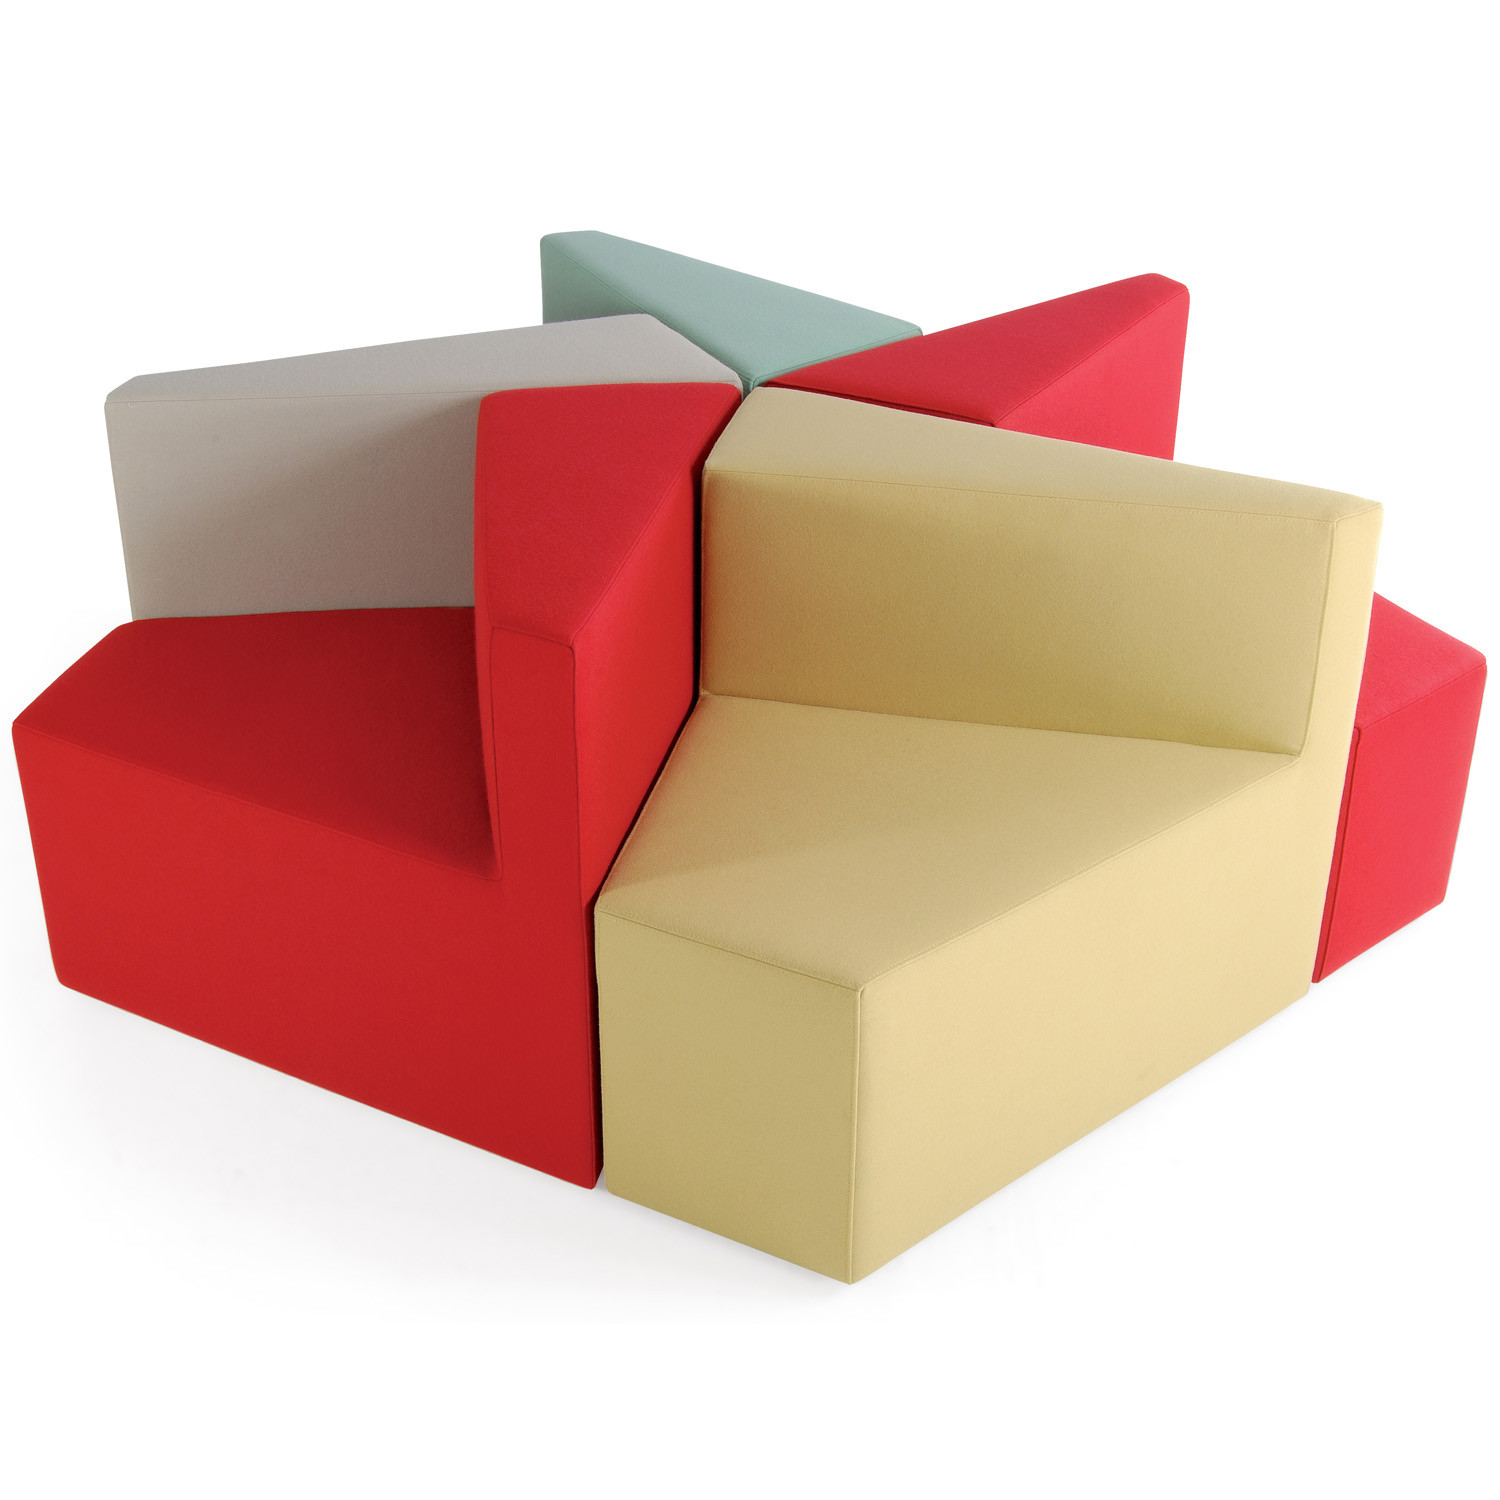 Hm77 Modular Chairs Soft Seating Apres Furniture